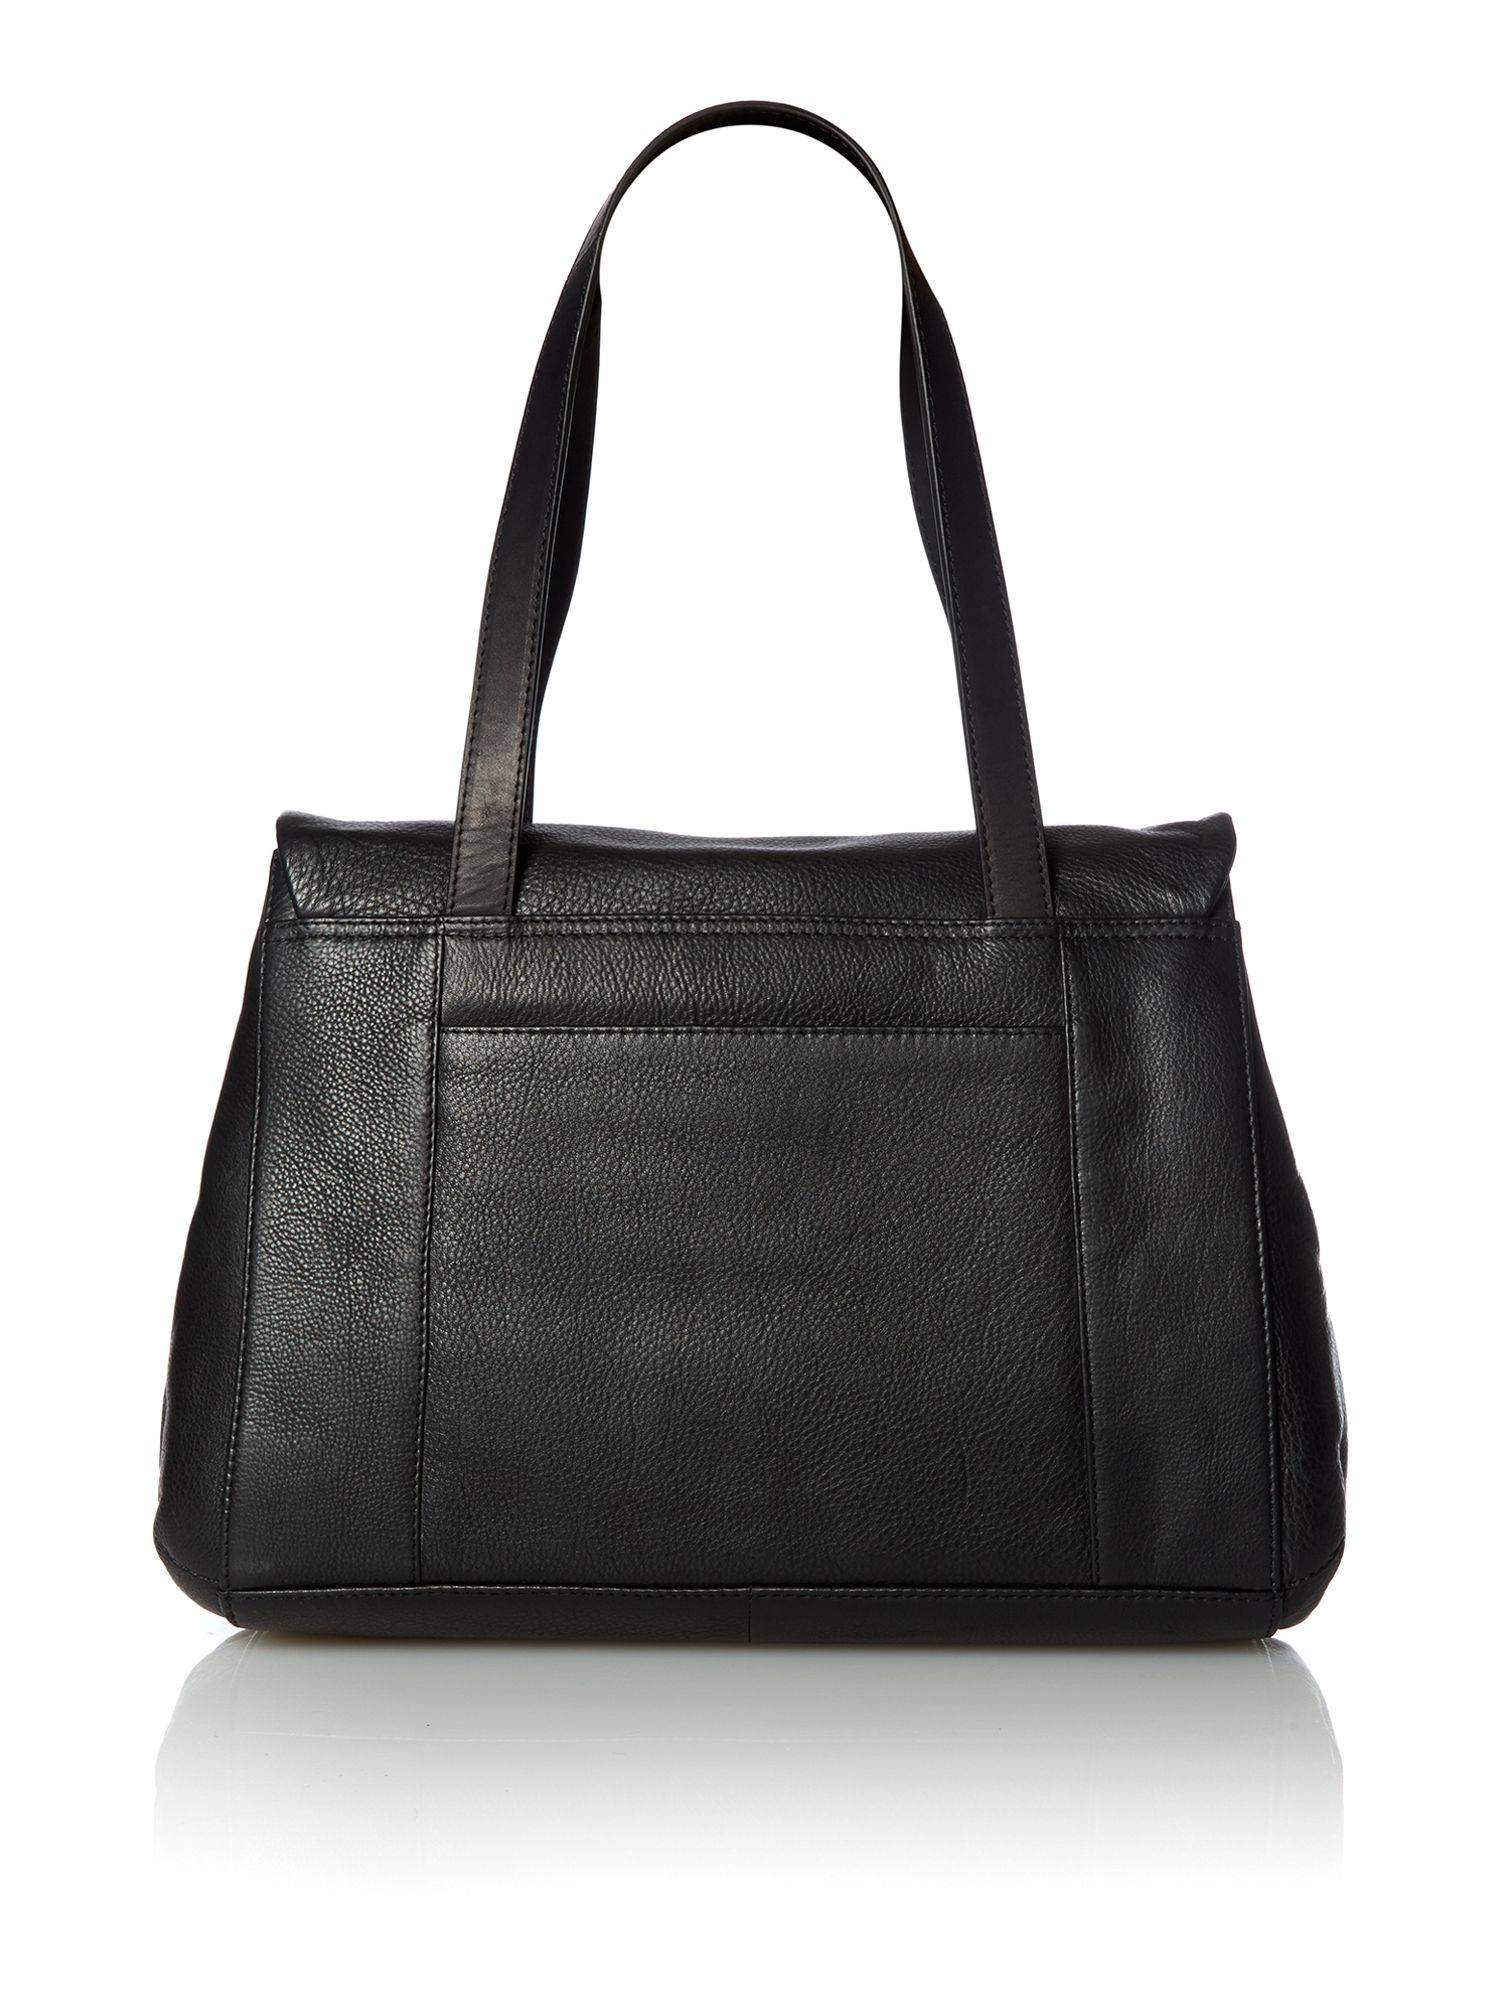 Sherwood medium tote bag